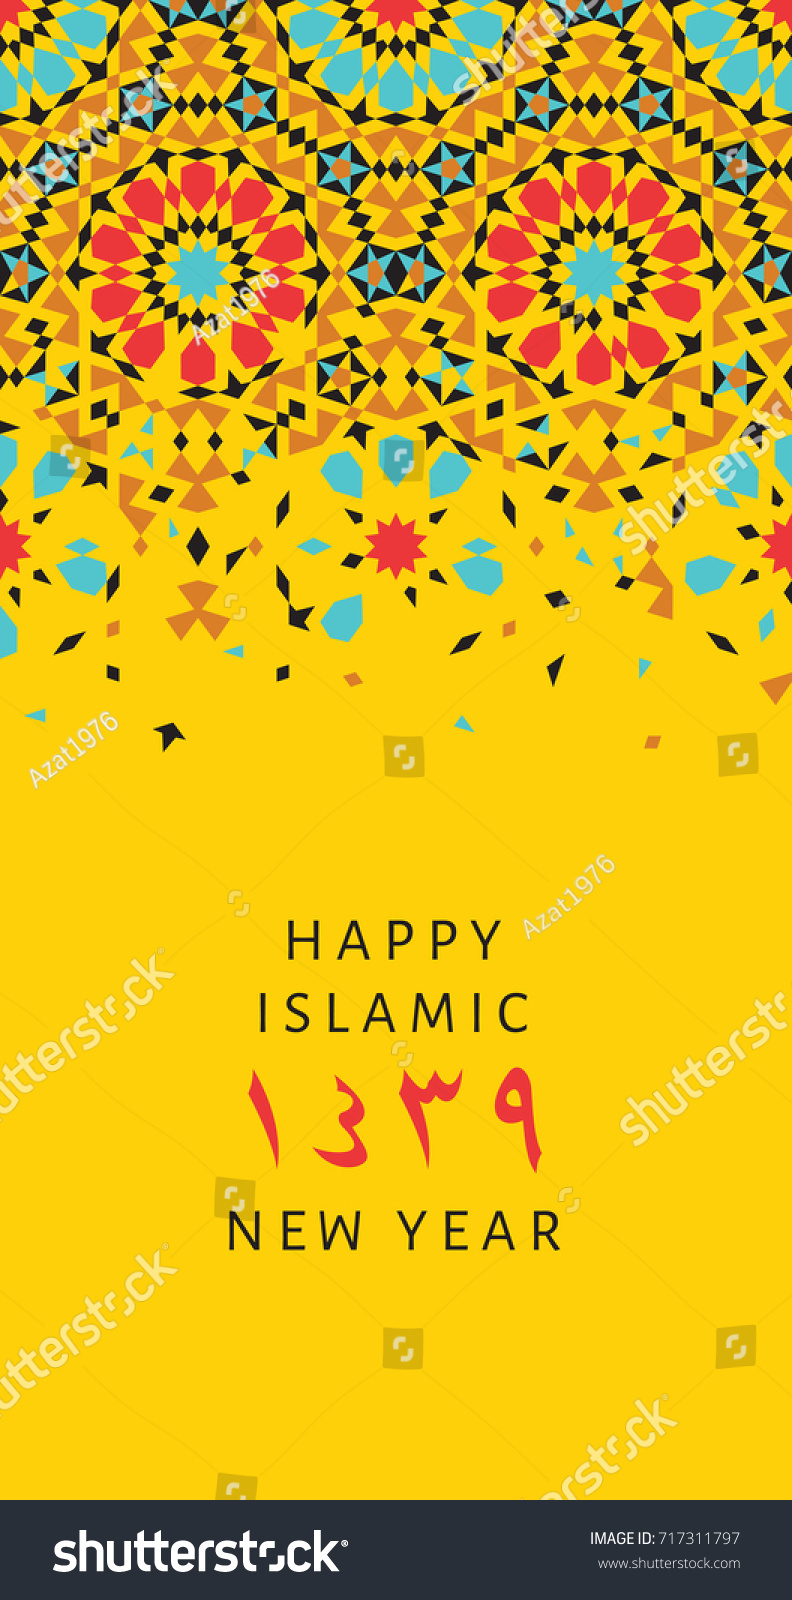 1439 Hijri Islamic New Year Happy Stock Vector Royalty Free